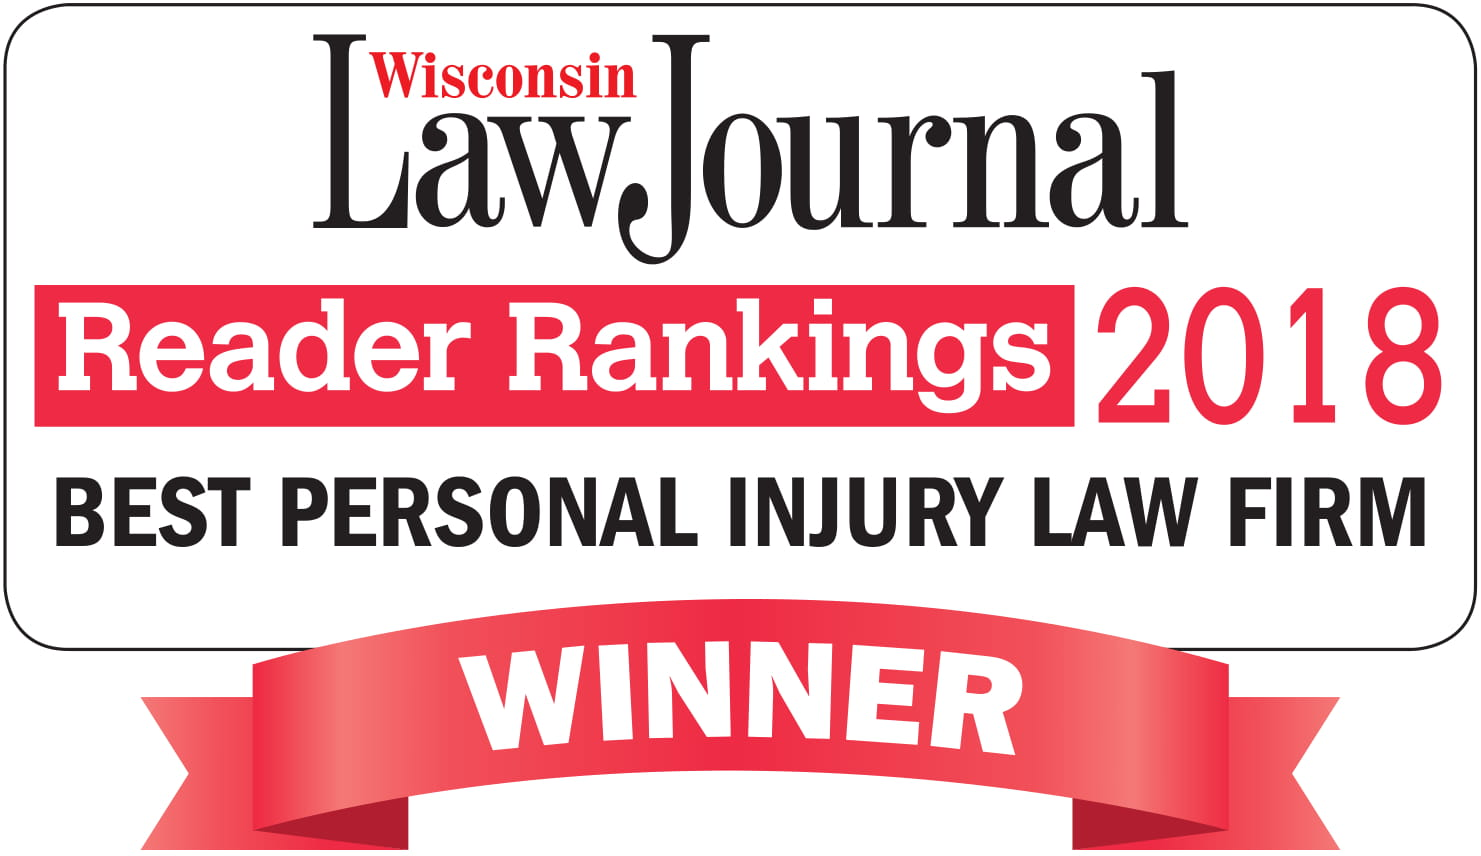 WI Law Journal Reader Rankings Best Personal Injury Law Firm 2018